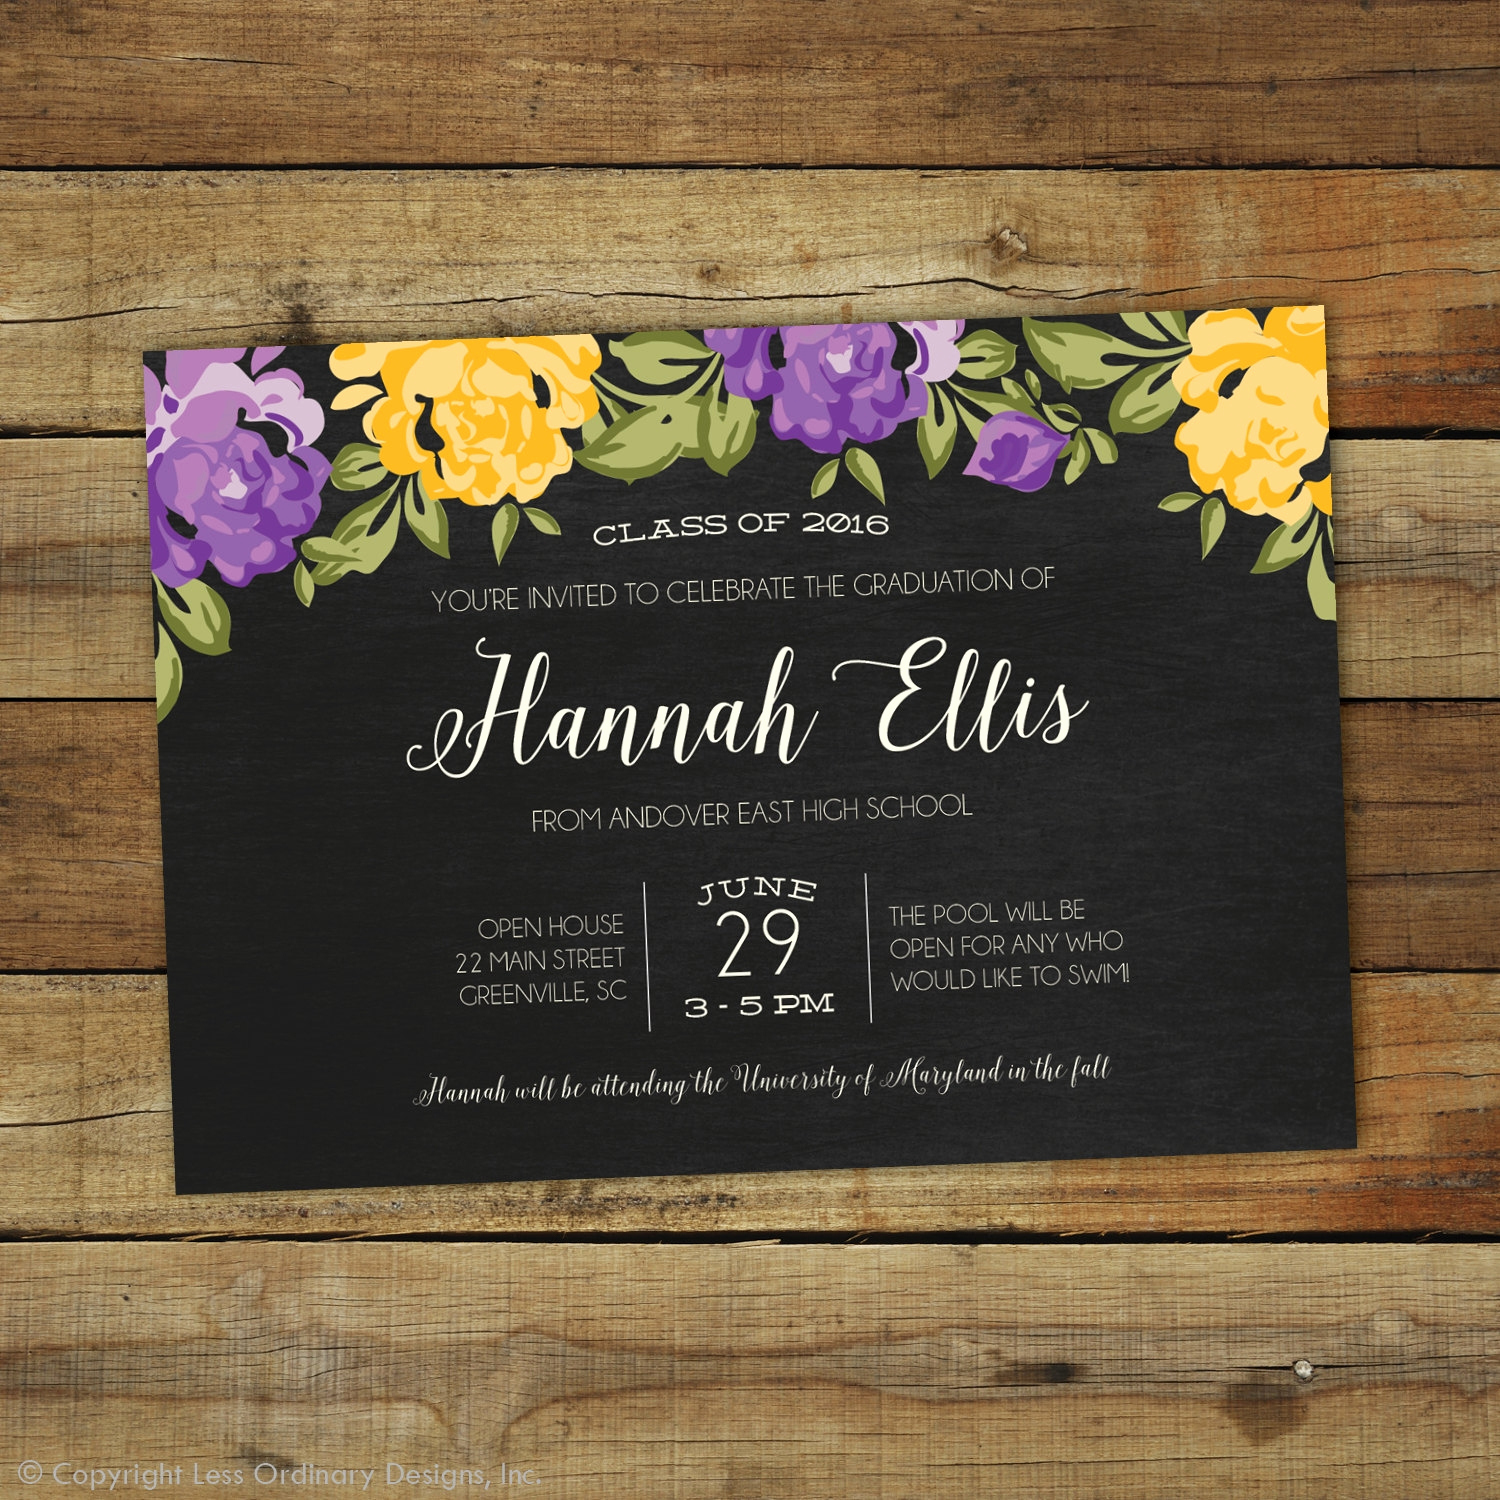 Open House Invitation Examples Fresh 15 Open House Invitation Designs and Examples – Psd Ai